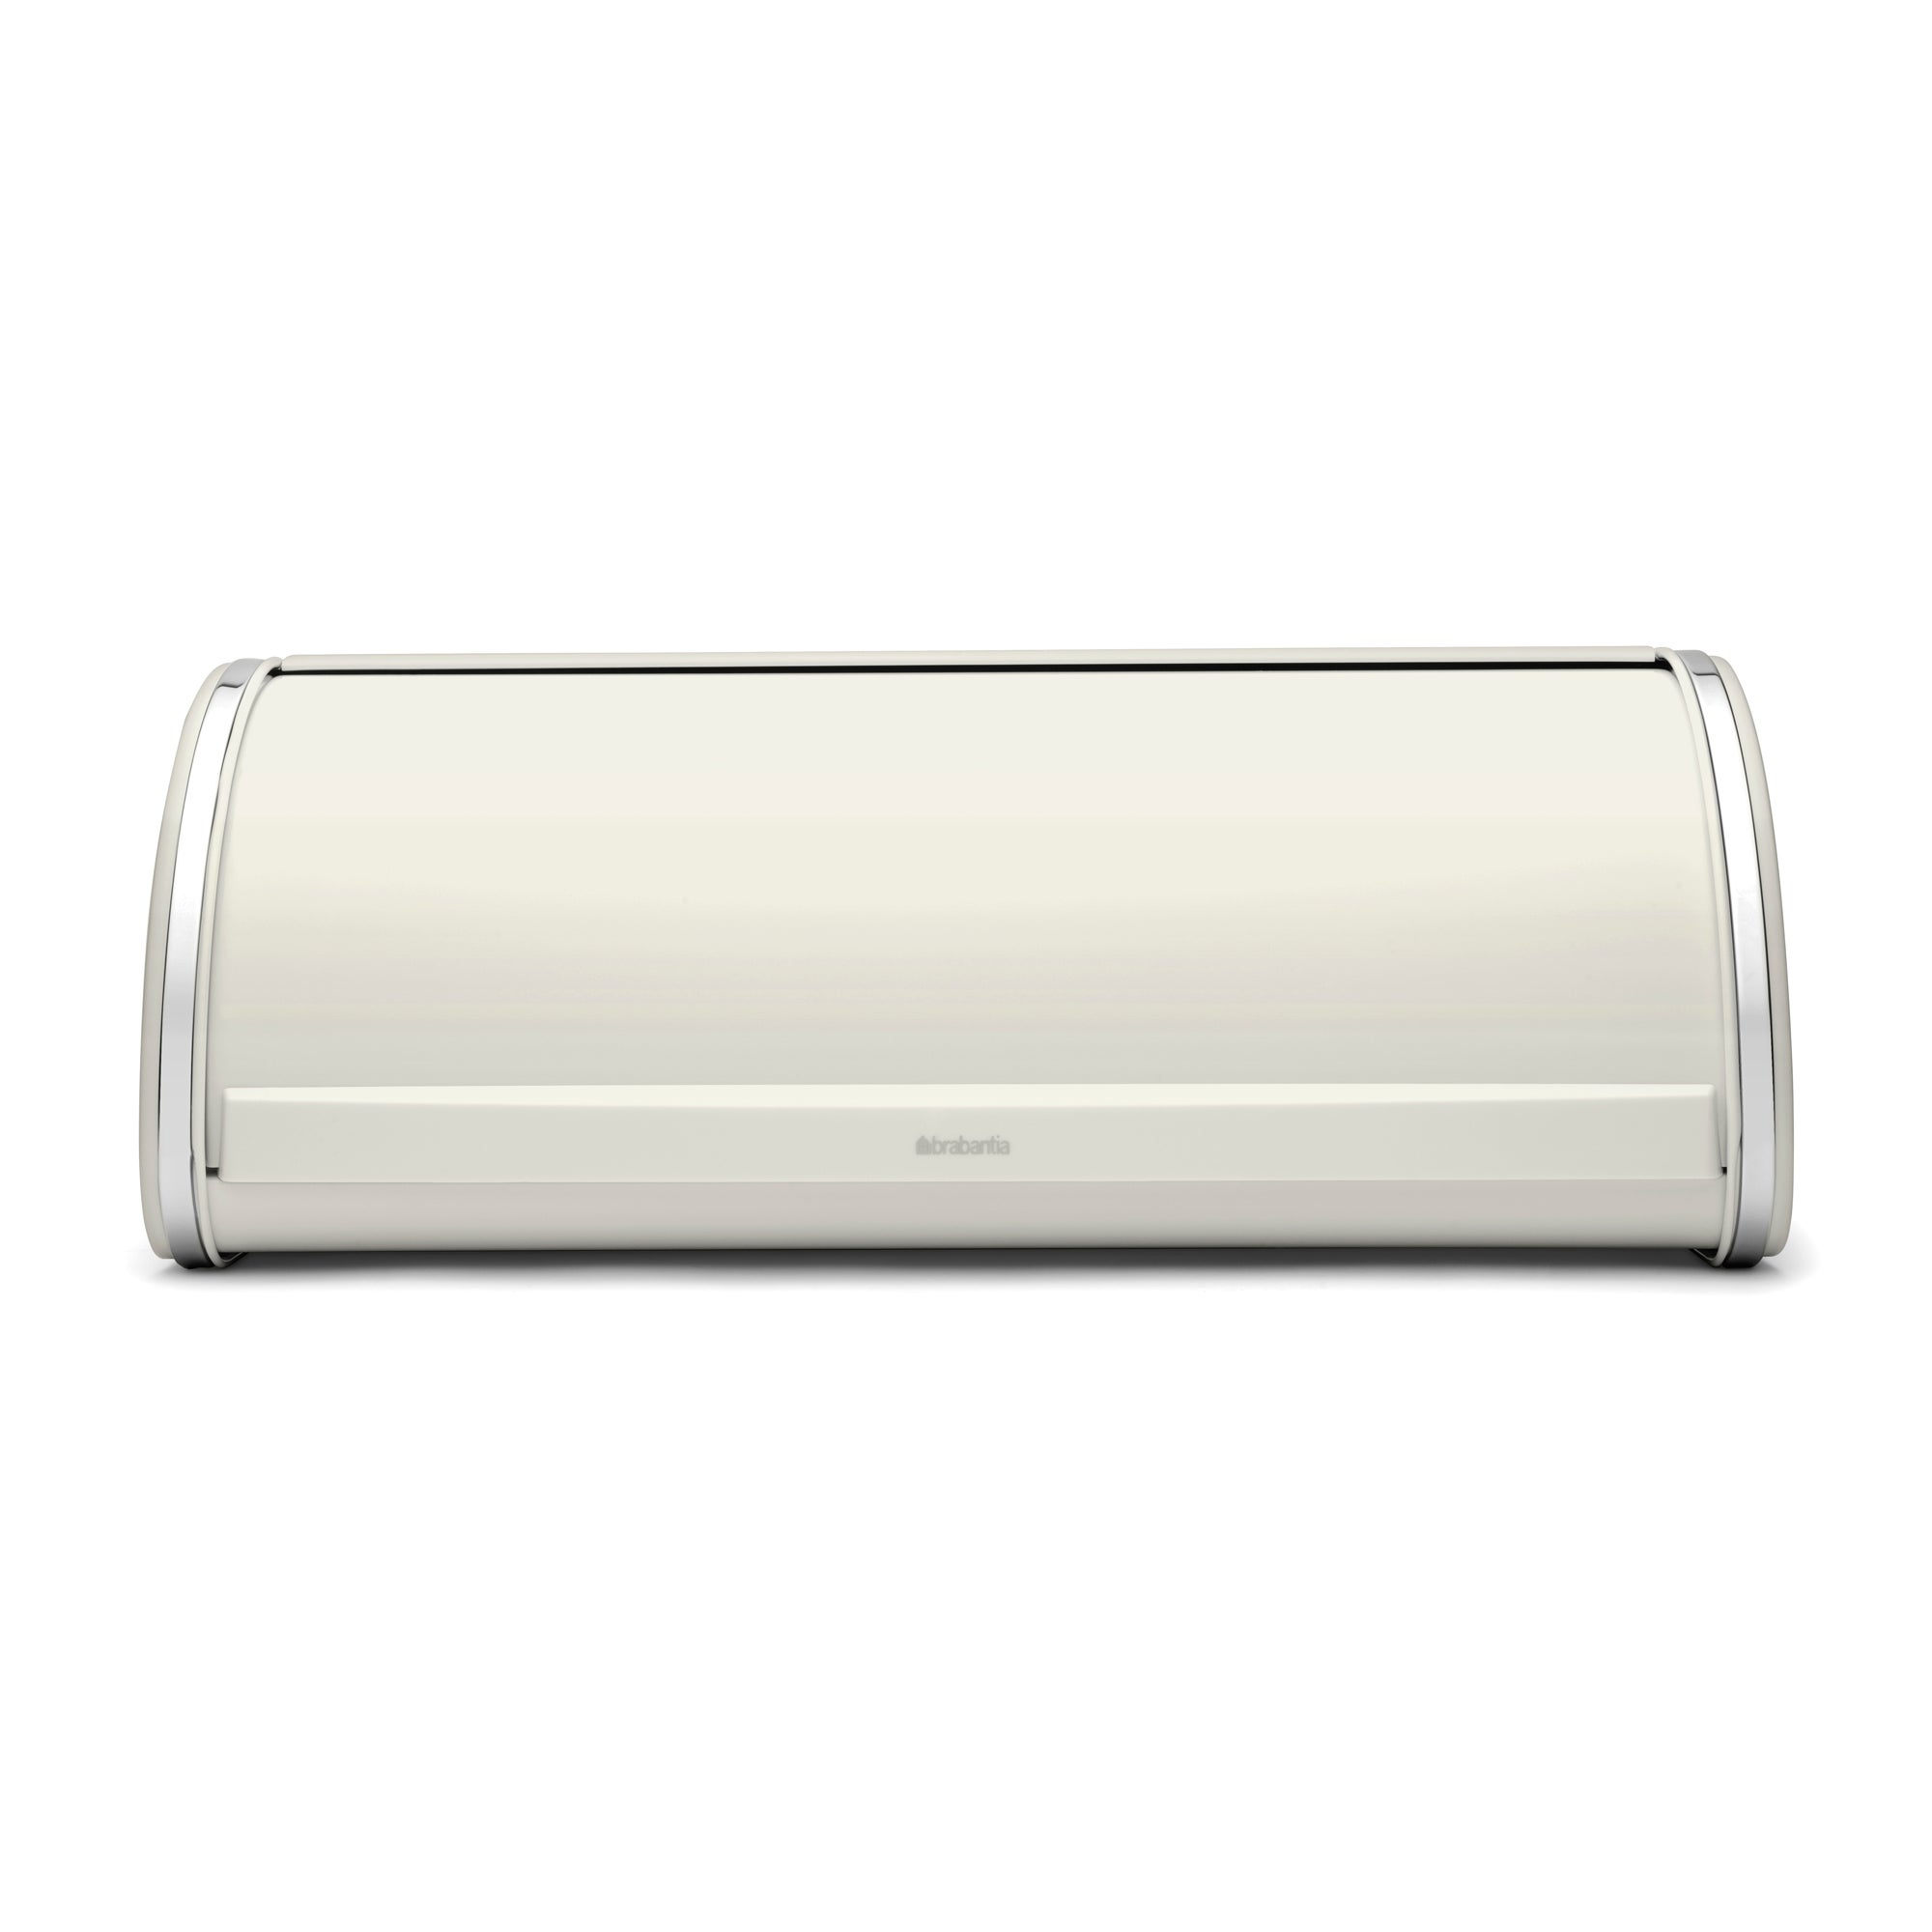 Brabantia Cream Roll Top Bread Bin